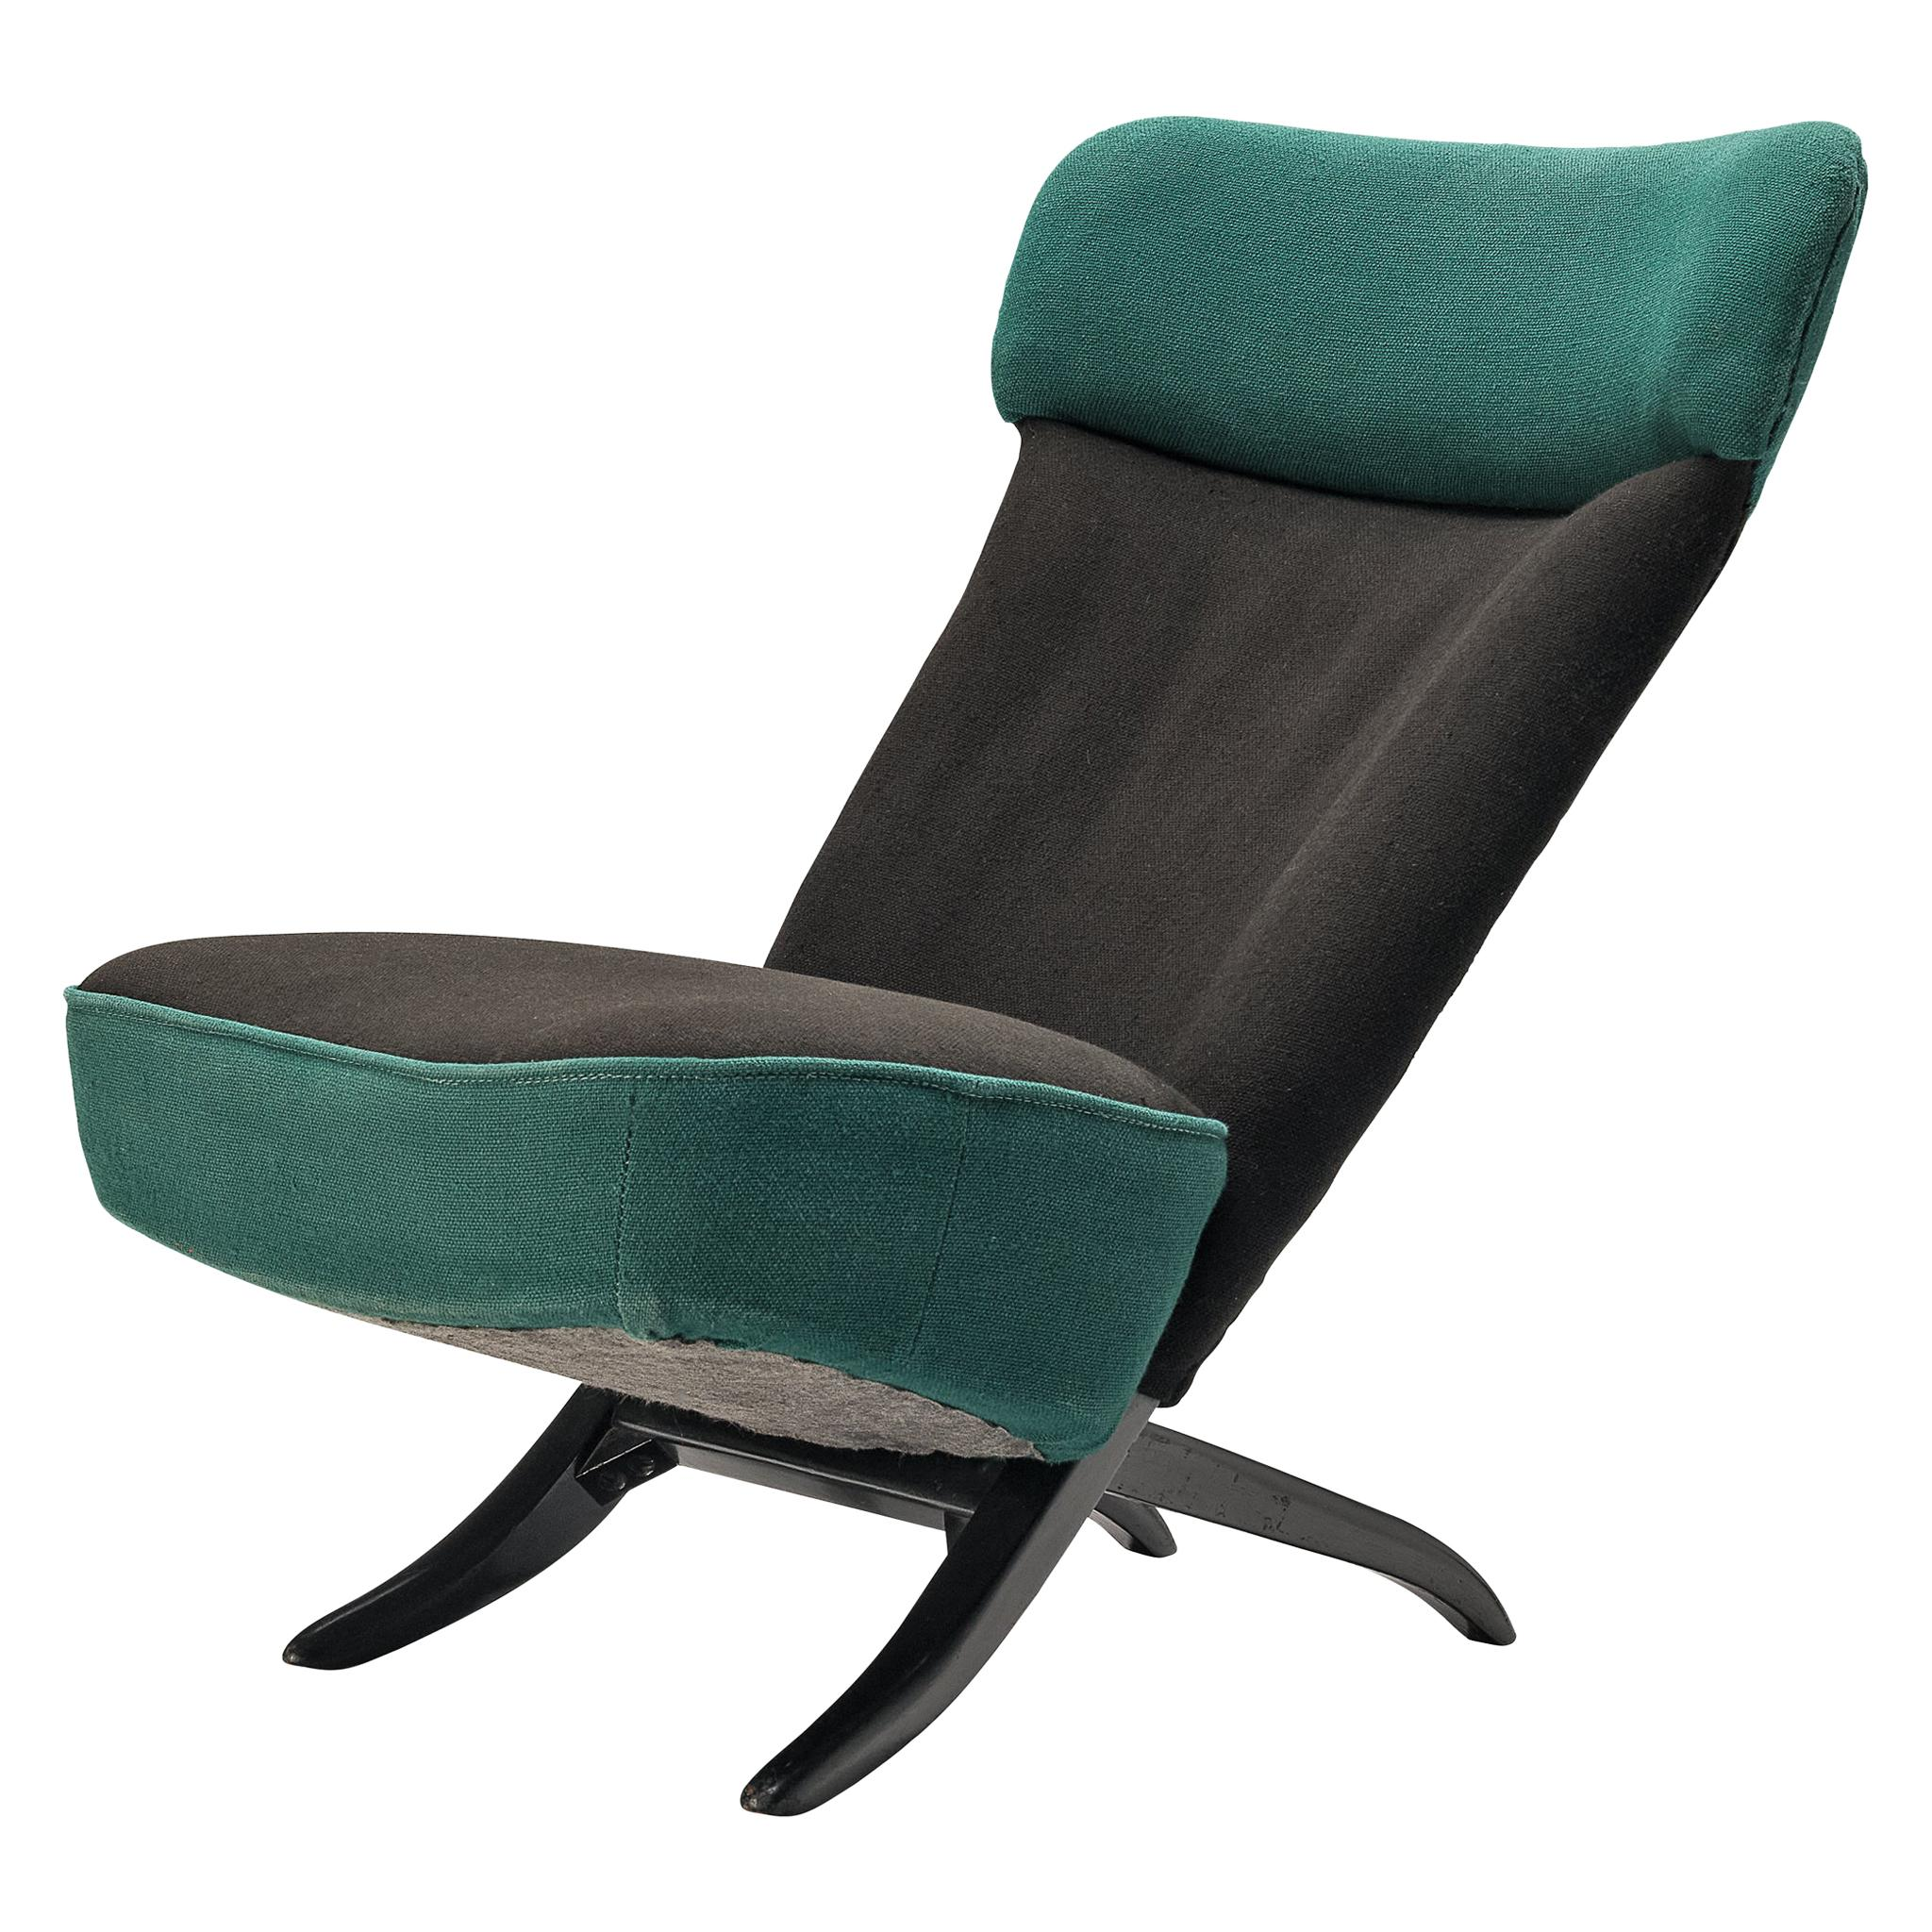 Theo Ruth for Artifort 'Congo' Easy Chair in Green and Black Fabric